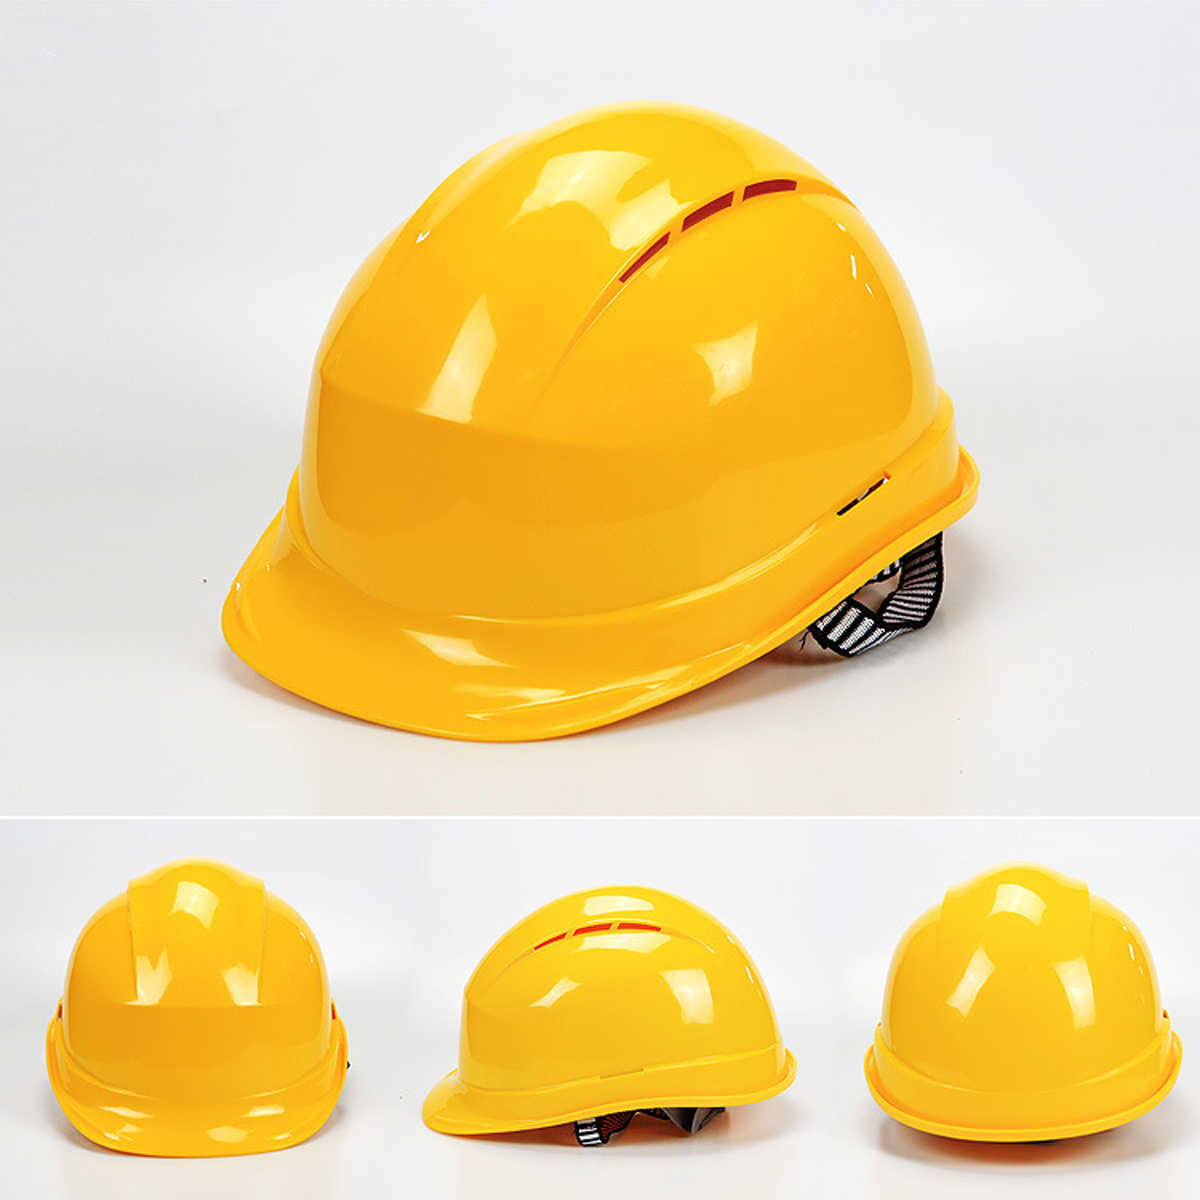 ... White Yellow Safety Hard Hats Breathable Construction Work Protective  Helmets ABS Insulation Material Protect Rescue ... b18c1739dcd